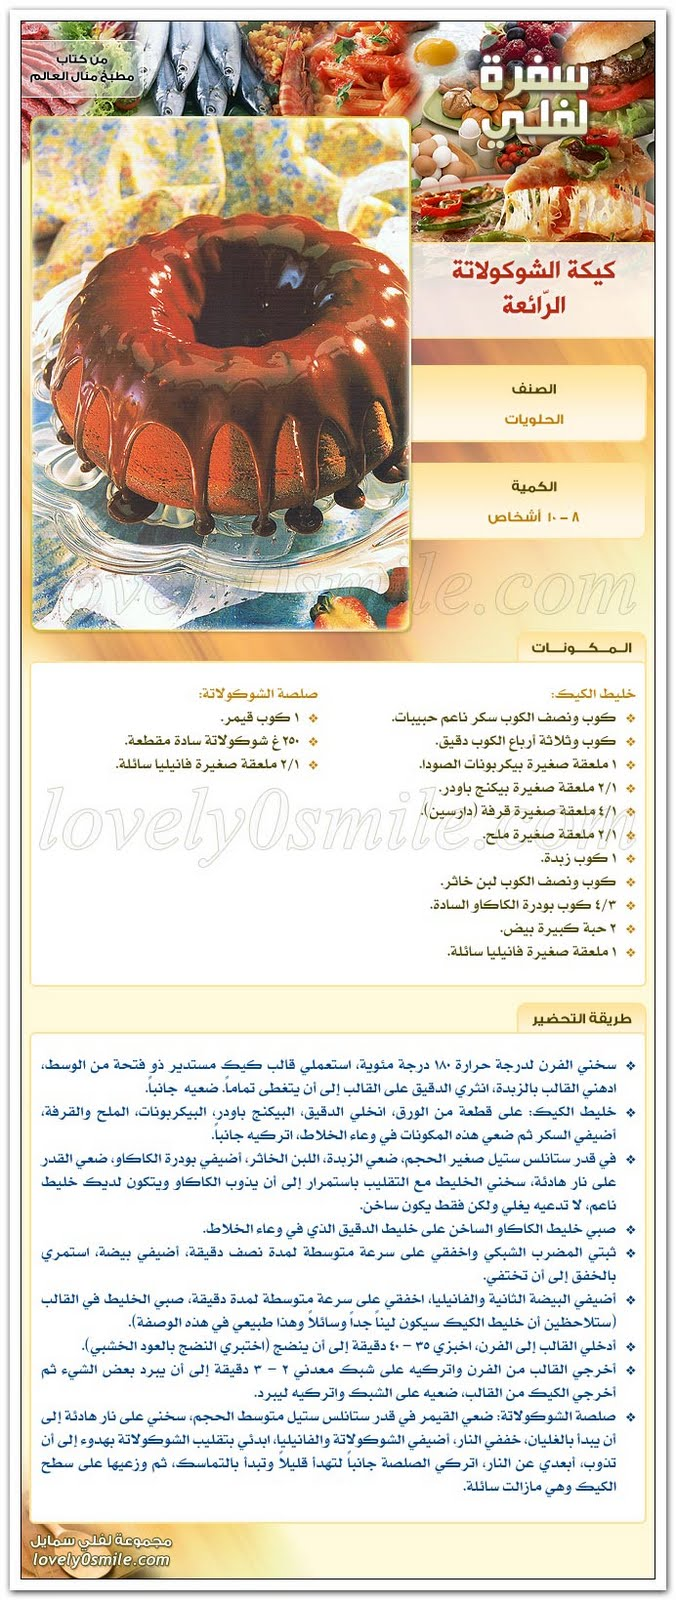 http://www.qassimy.com/up/users/qassimy/manal_alalem_cookbook_recipes_cooking_8.jpg